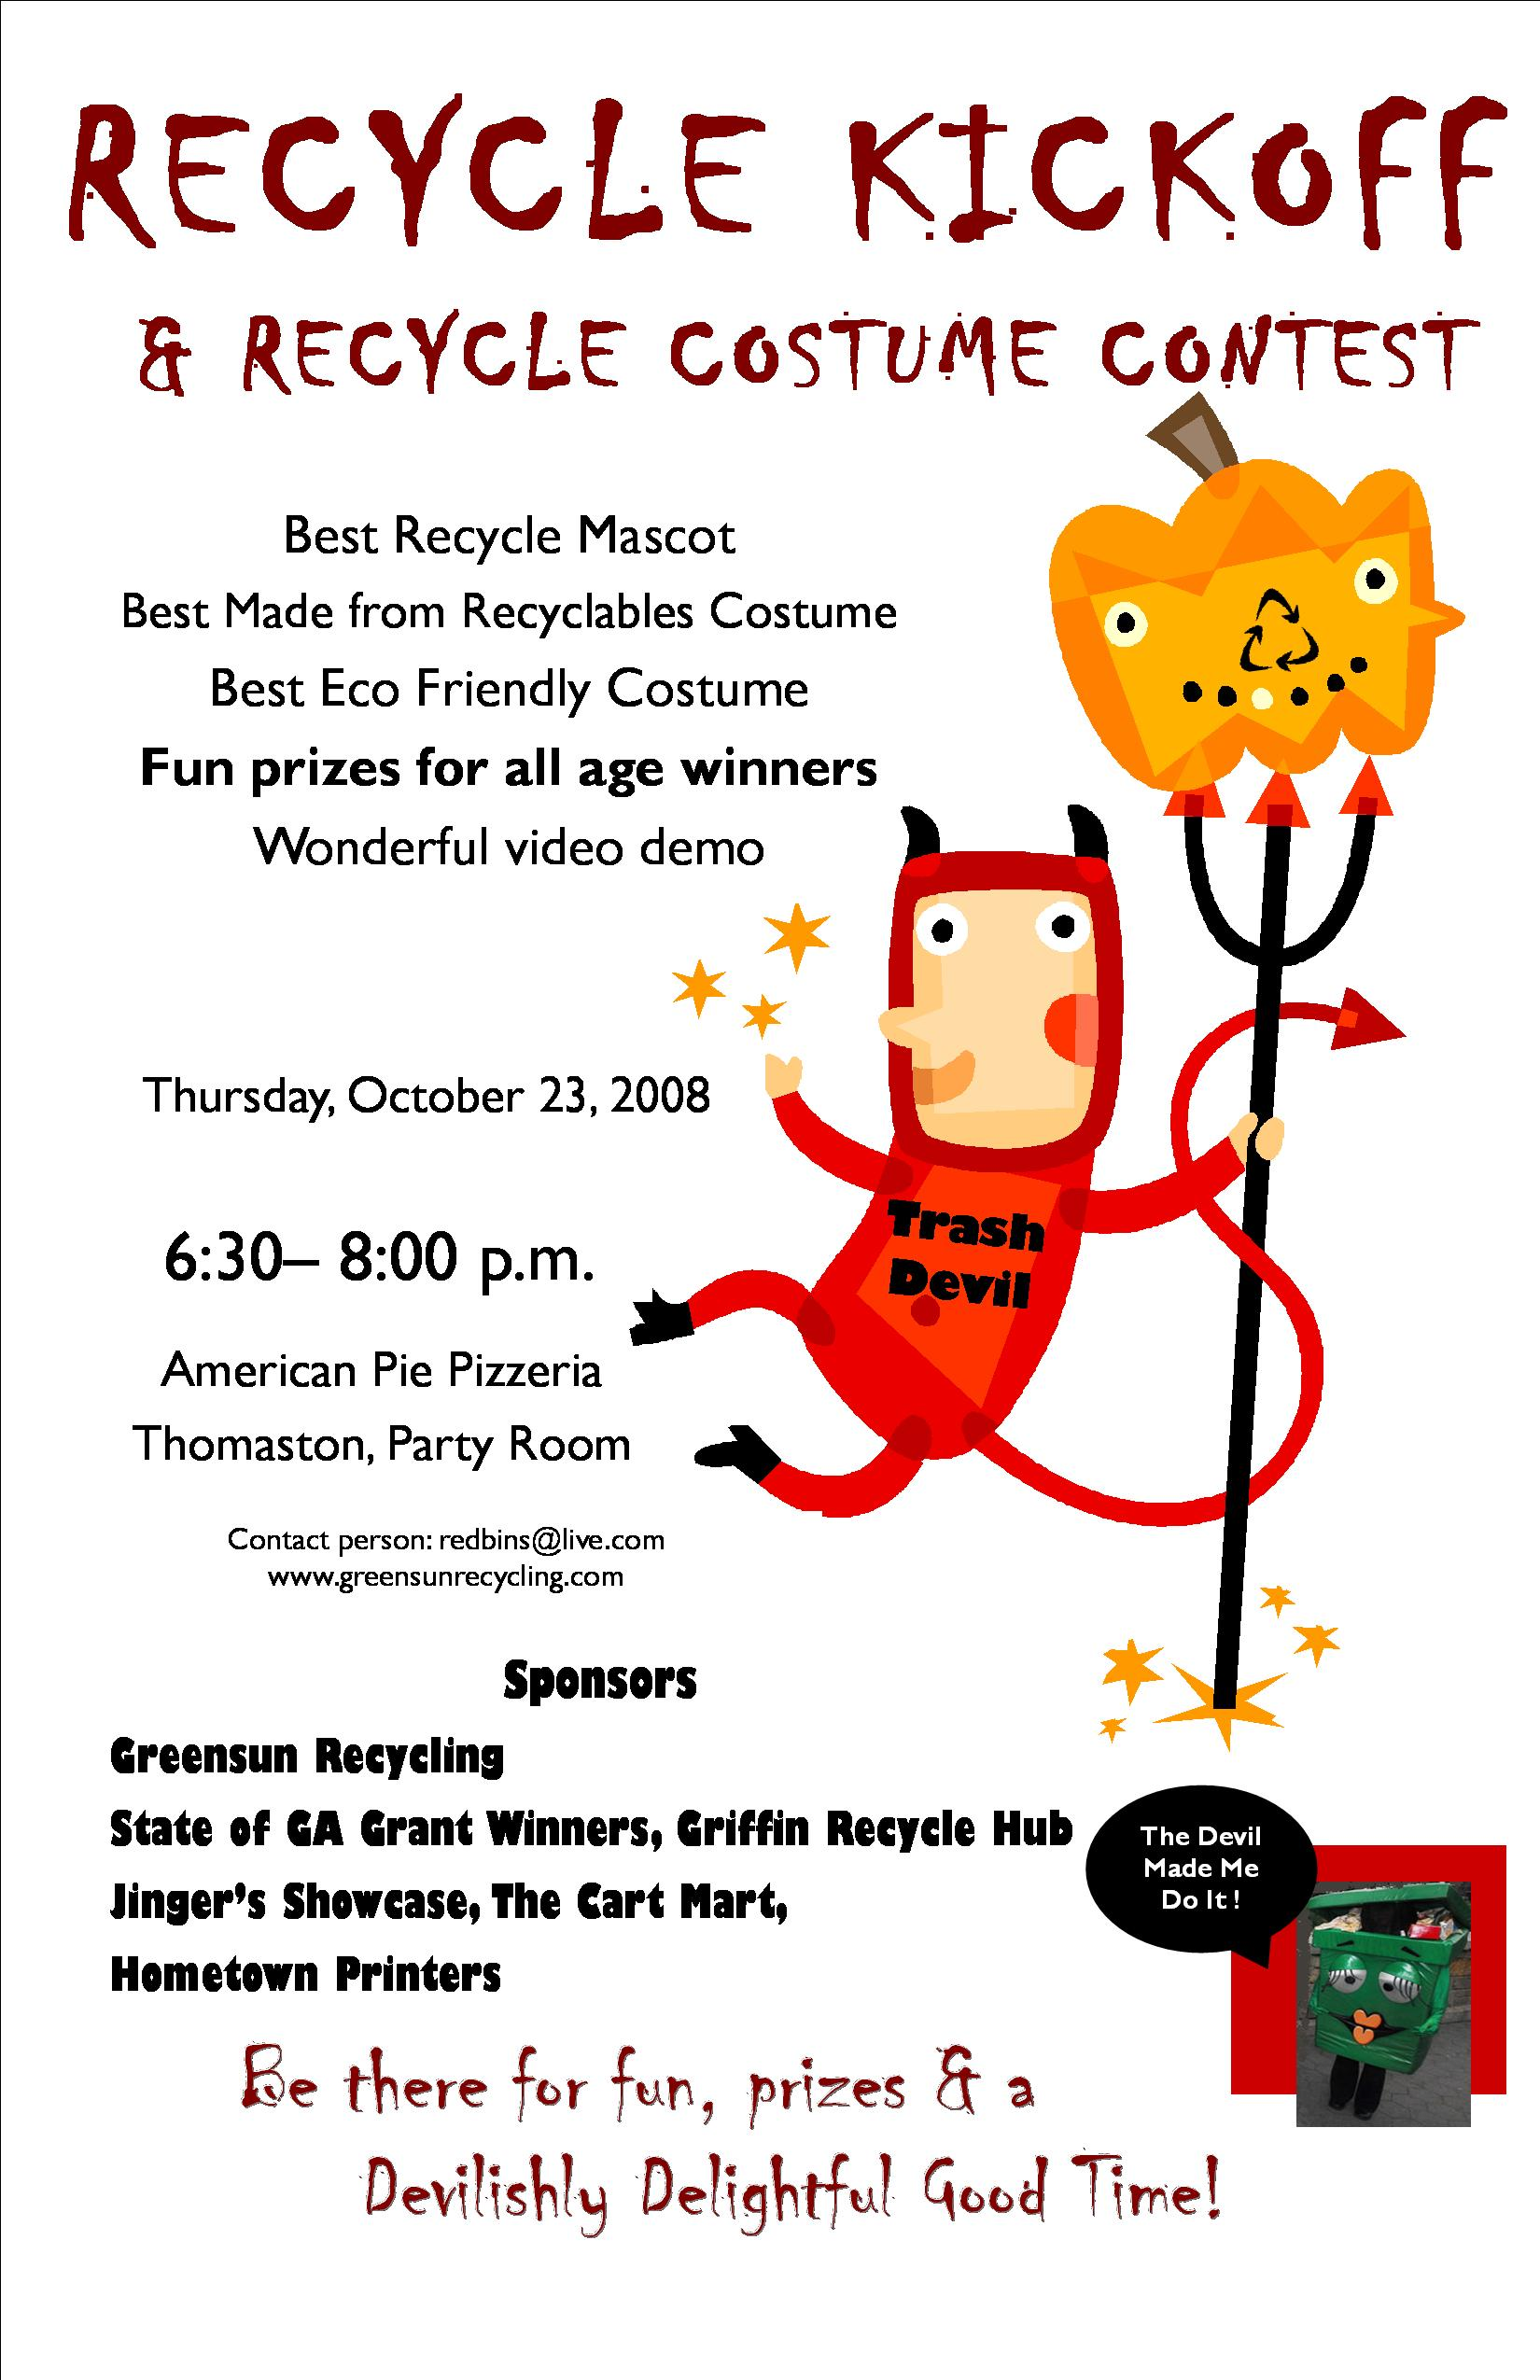 recycle costume contest greensun recycling be bright go green